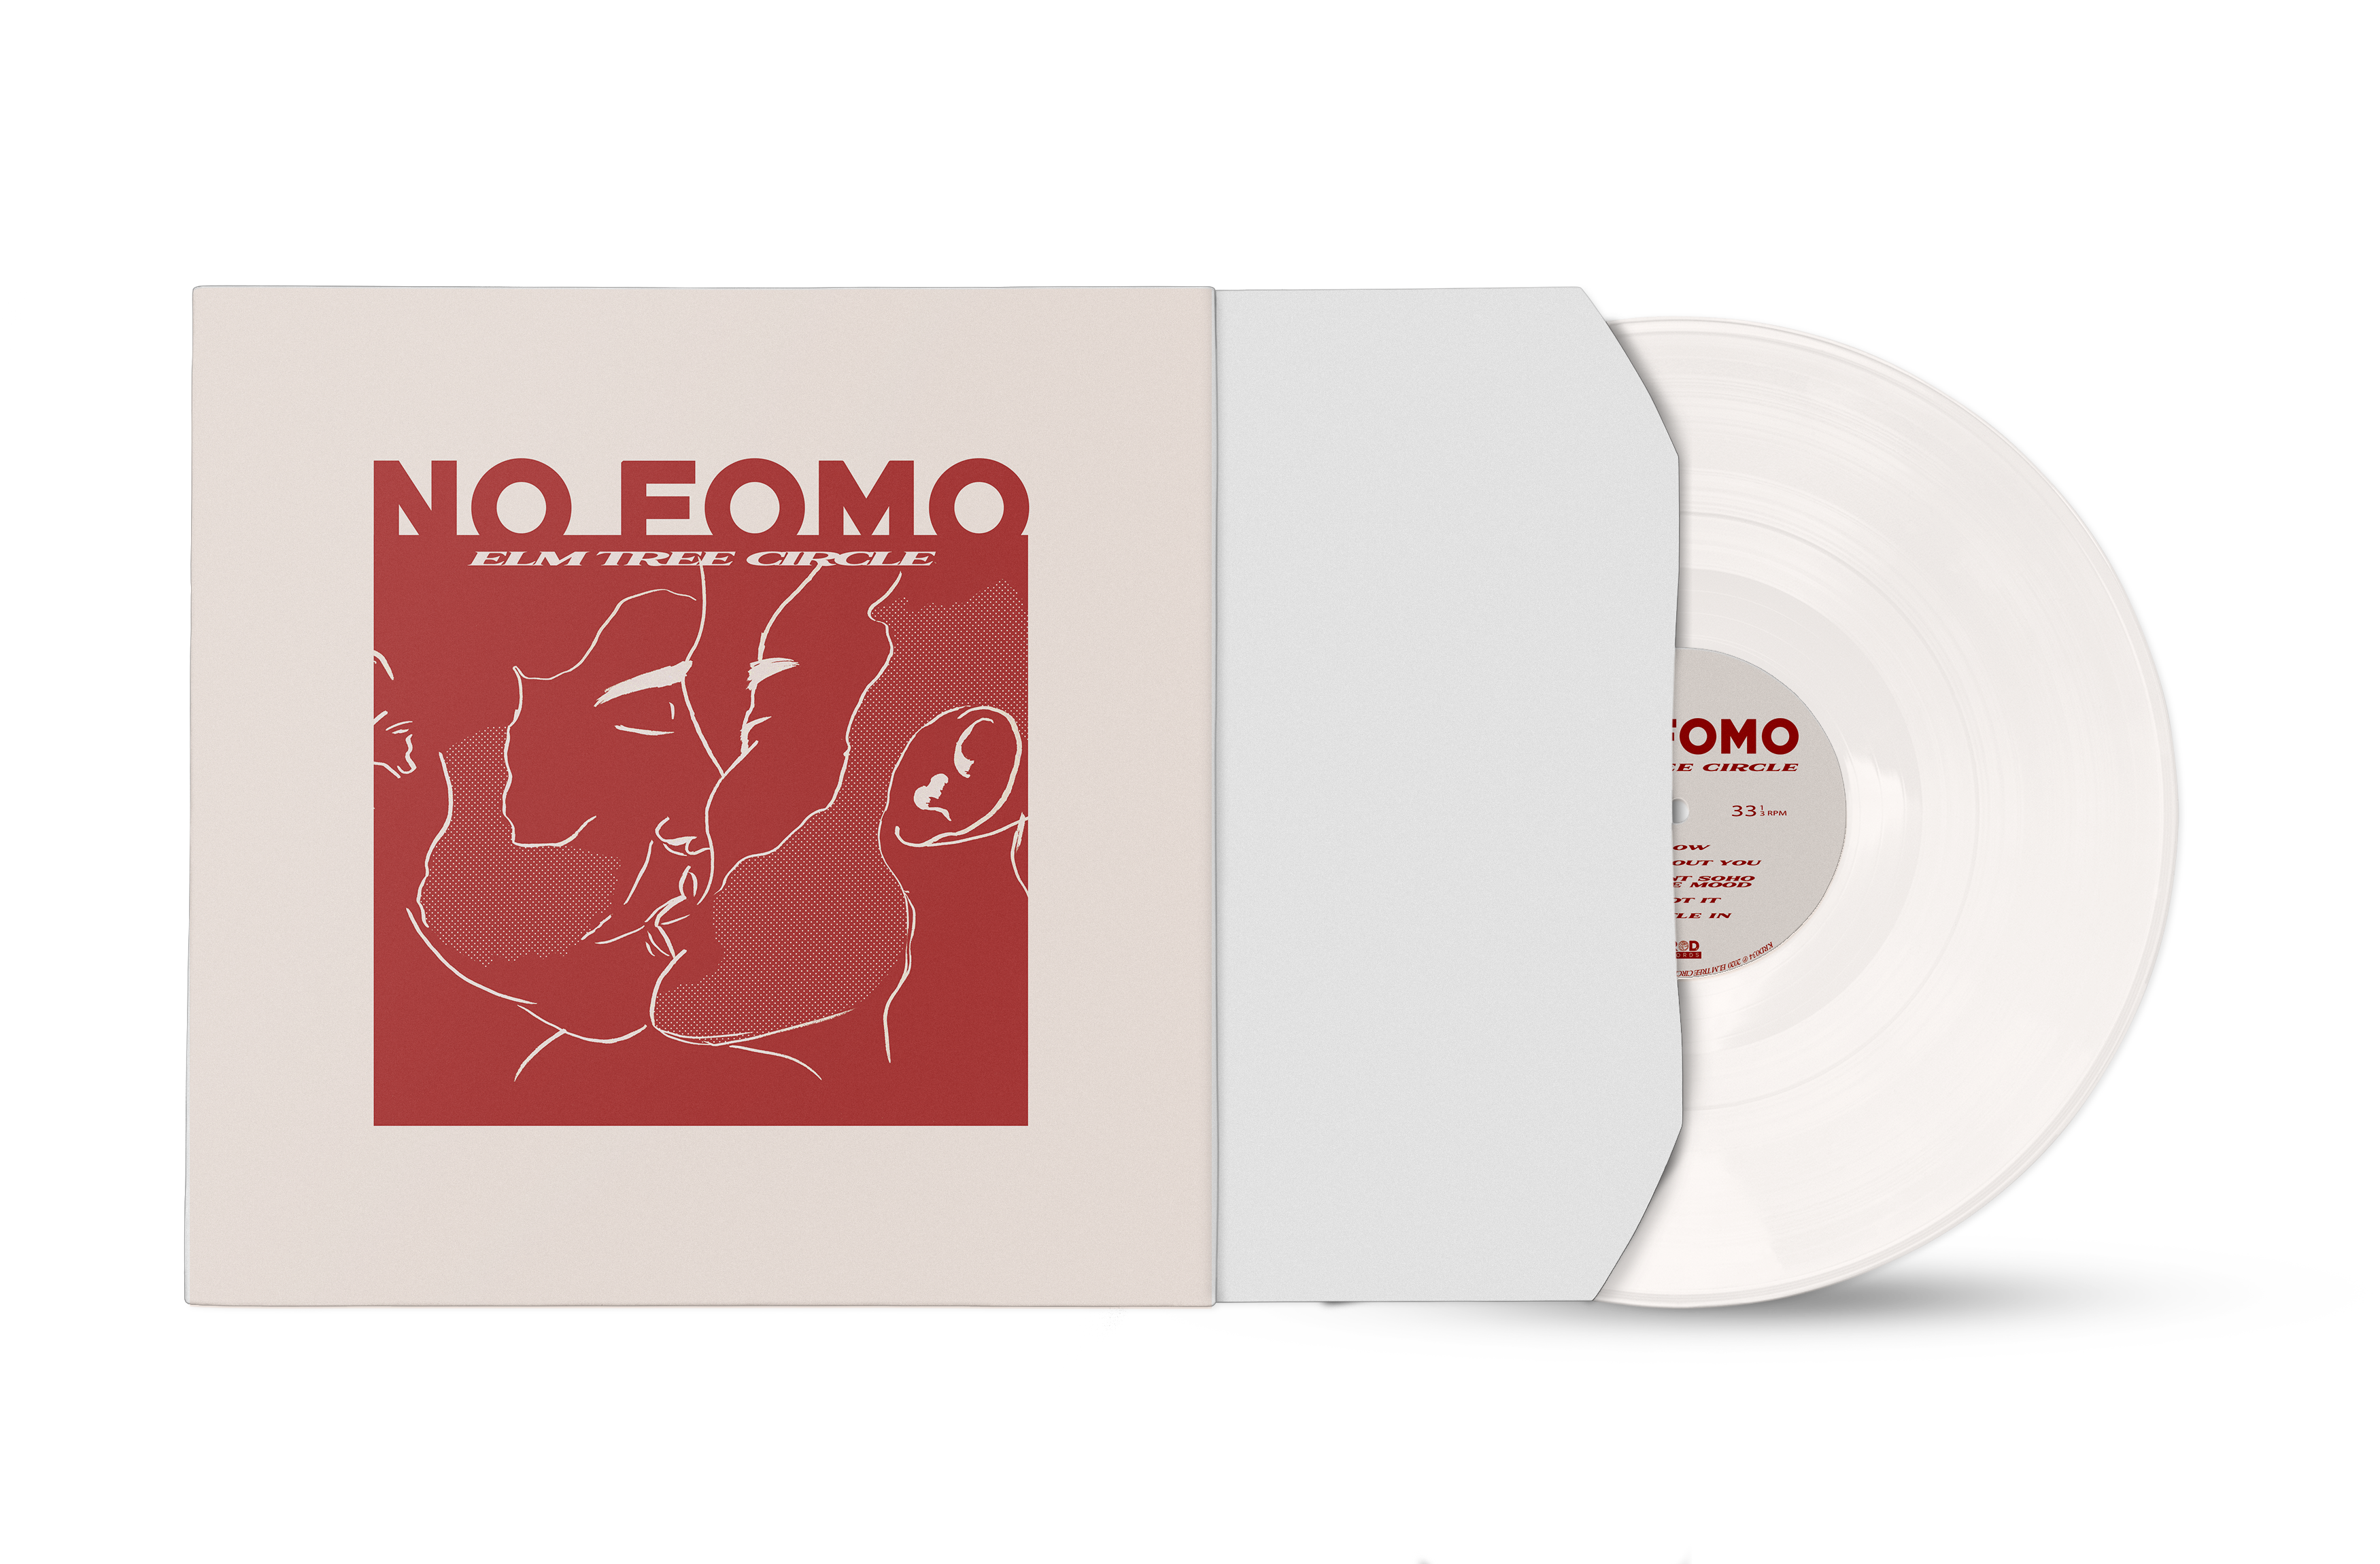 Elm Tree Circle - NO FOMO (LP, Vinyl, Milky Clear)